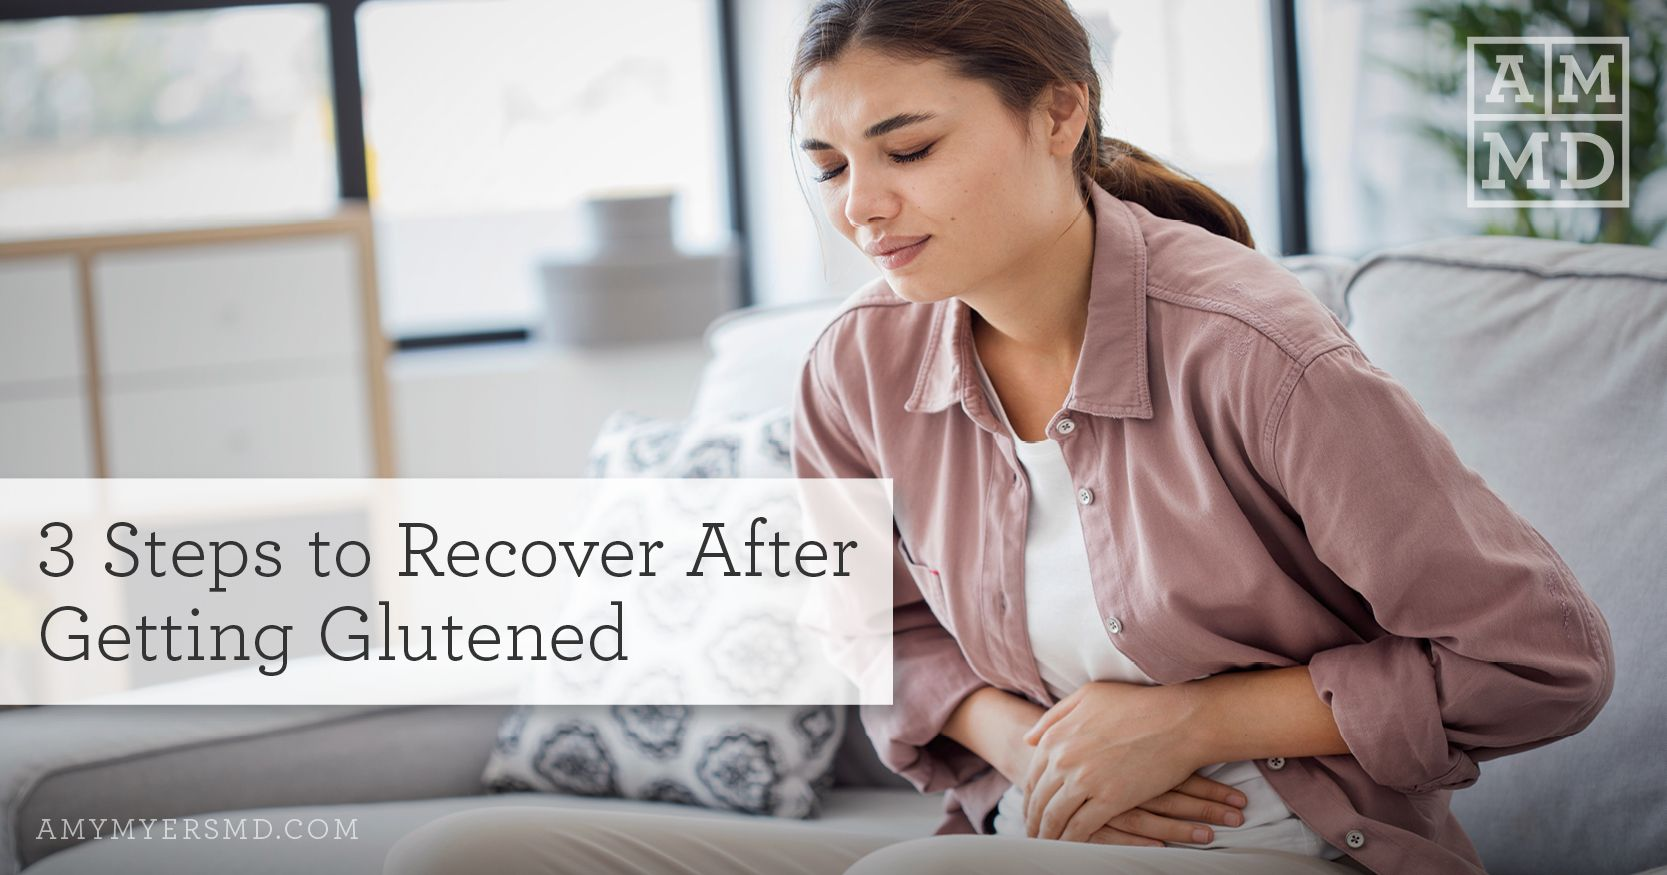 3 Steps to Recover After Getting Glutened (With images ...